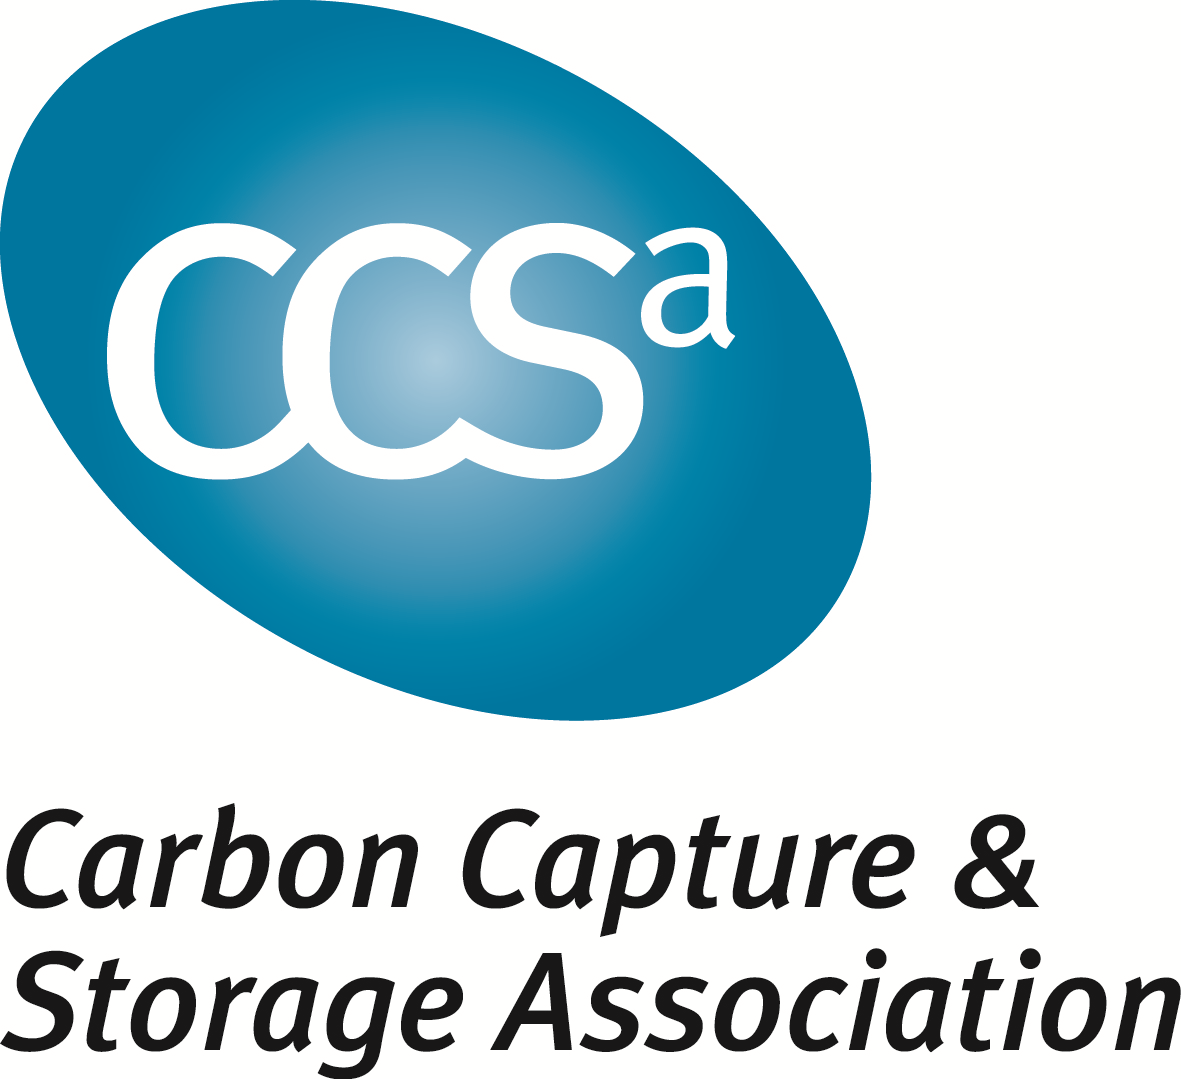 Carbon Capture & Storage Association (CCSA) - The Carbon Capture & Storage Association (CCSA) was launched in March 2006 to represent the interests of its members in promoting the business of capture and geological storage of carbon dioxide (known as Carbon Capture and Storage, or CCS) as a means of abating atmospheric emissions of carbon dioxide and tackling climate change.As a non-technical trade association, the CCSA is unique in its focus on the business side of CCS and efforts to ensure commercial-scale CCS projects can play a part in moving towards a low-carbon global economy. To this end, the Association benefits from a close working relationship with the UK Government and European Commission in developing an appropriate regulatory framework for CCS and influencing policy developments on an international level.